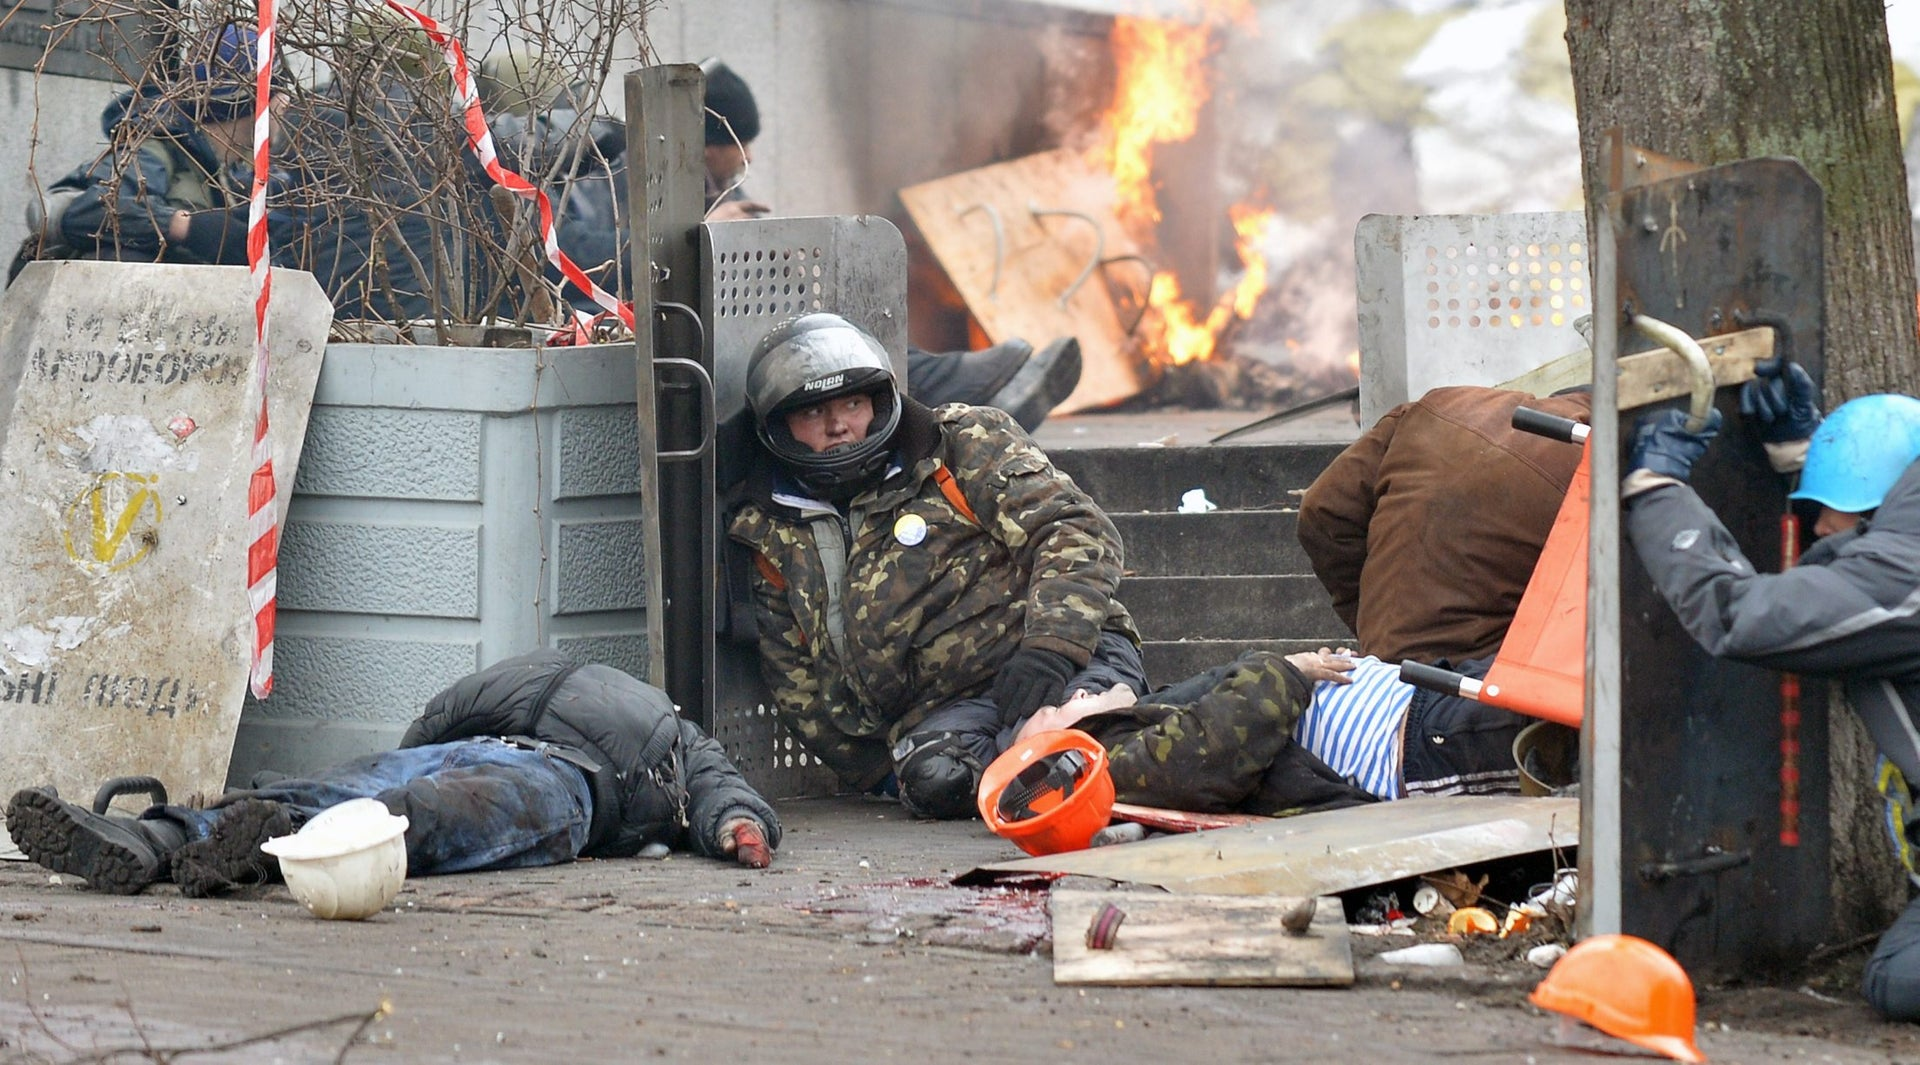 A wounded Maidan  activist next to the bodies of people killed by snipers during clashes between protesters and riot police in Kiev, Ukraine, February 20, 2014.